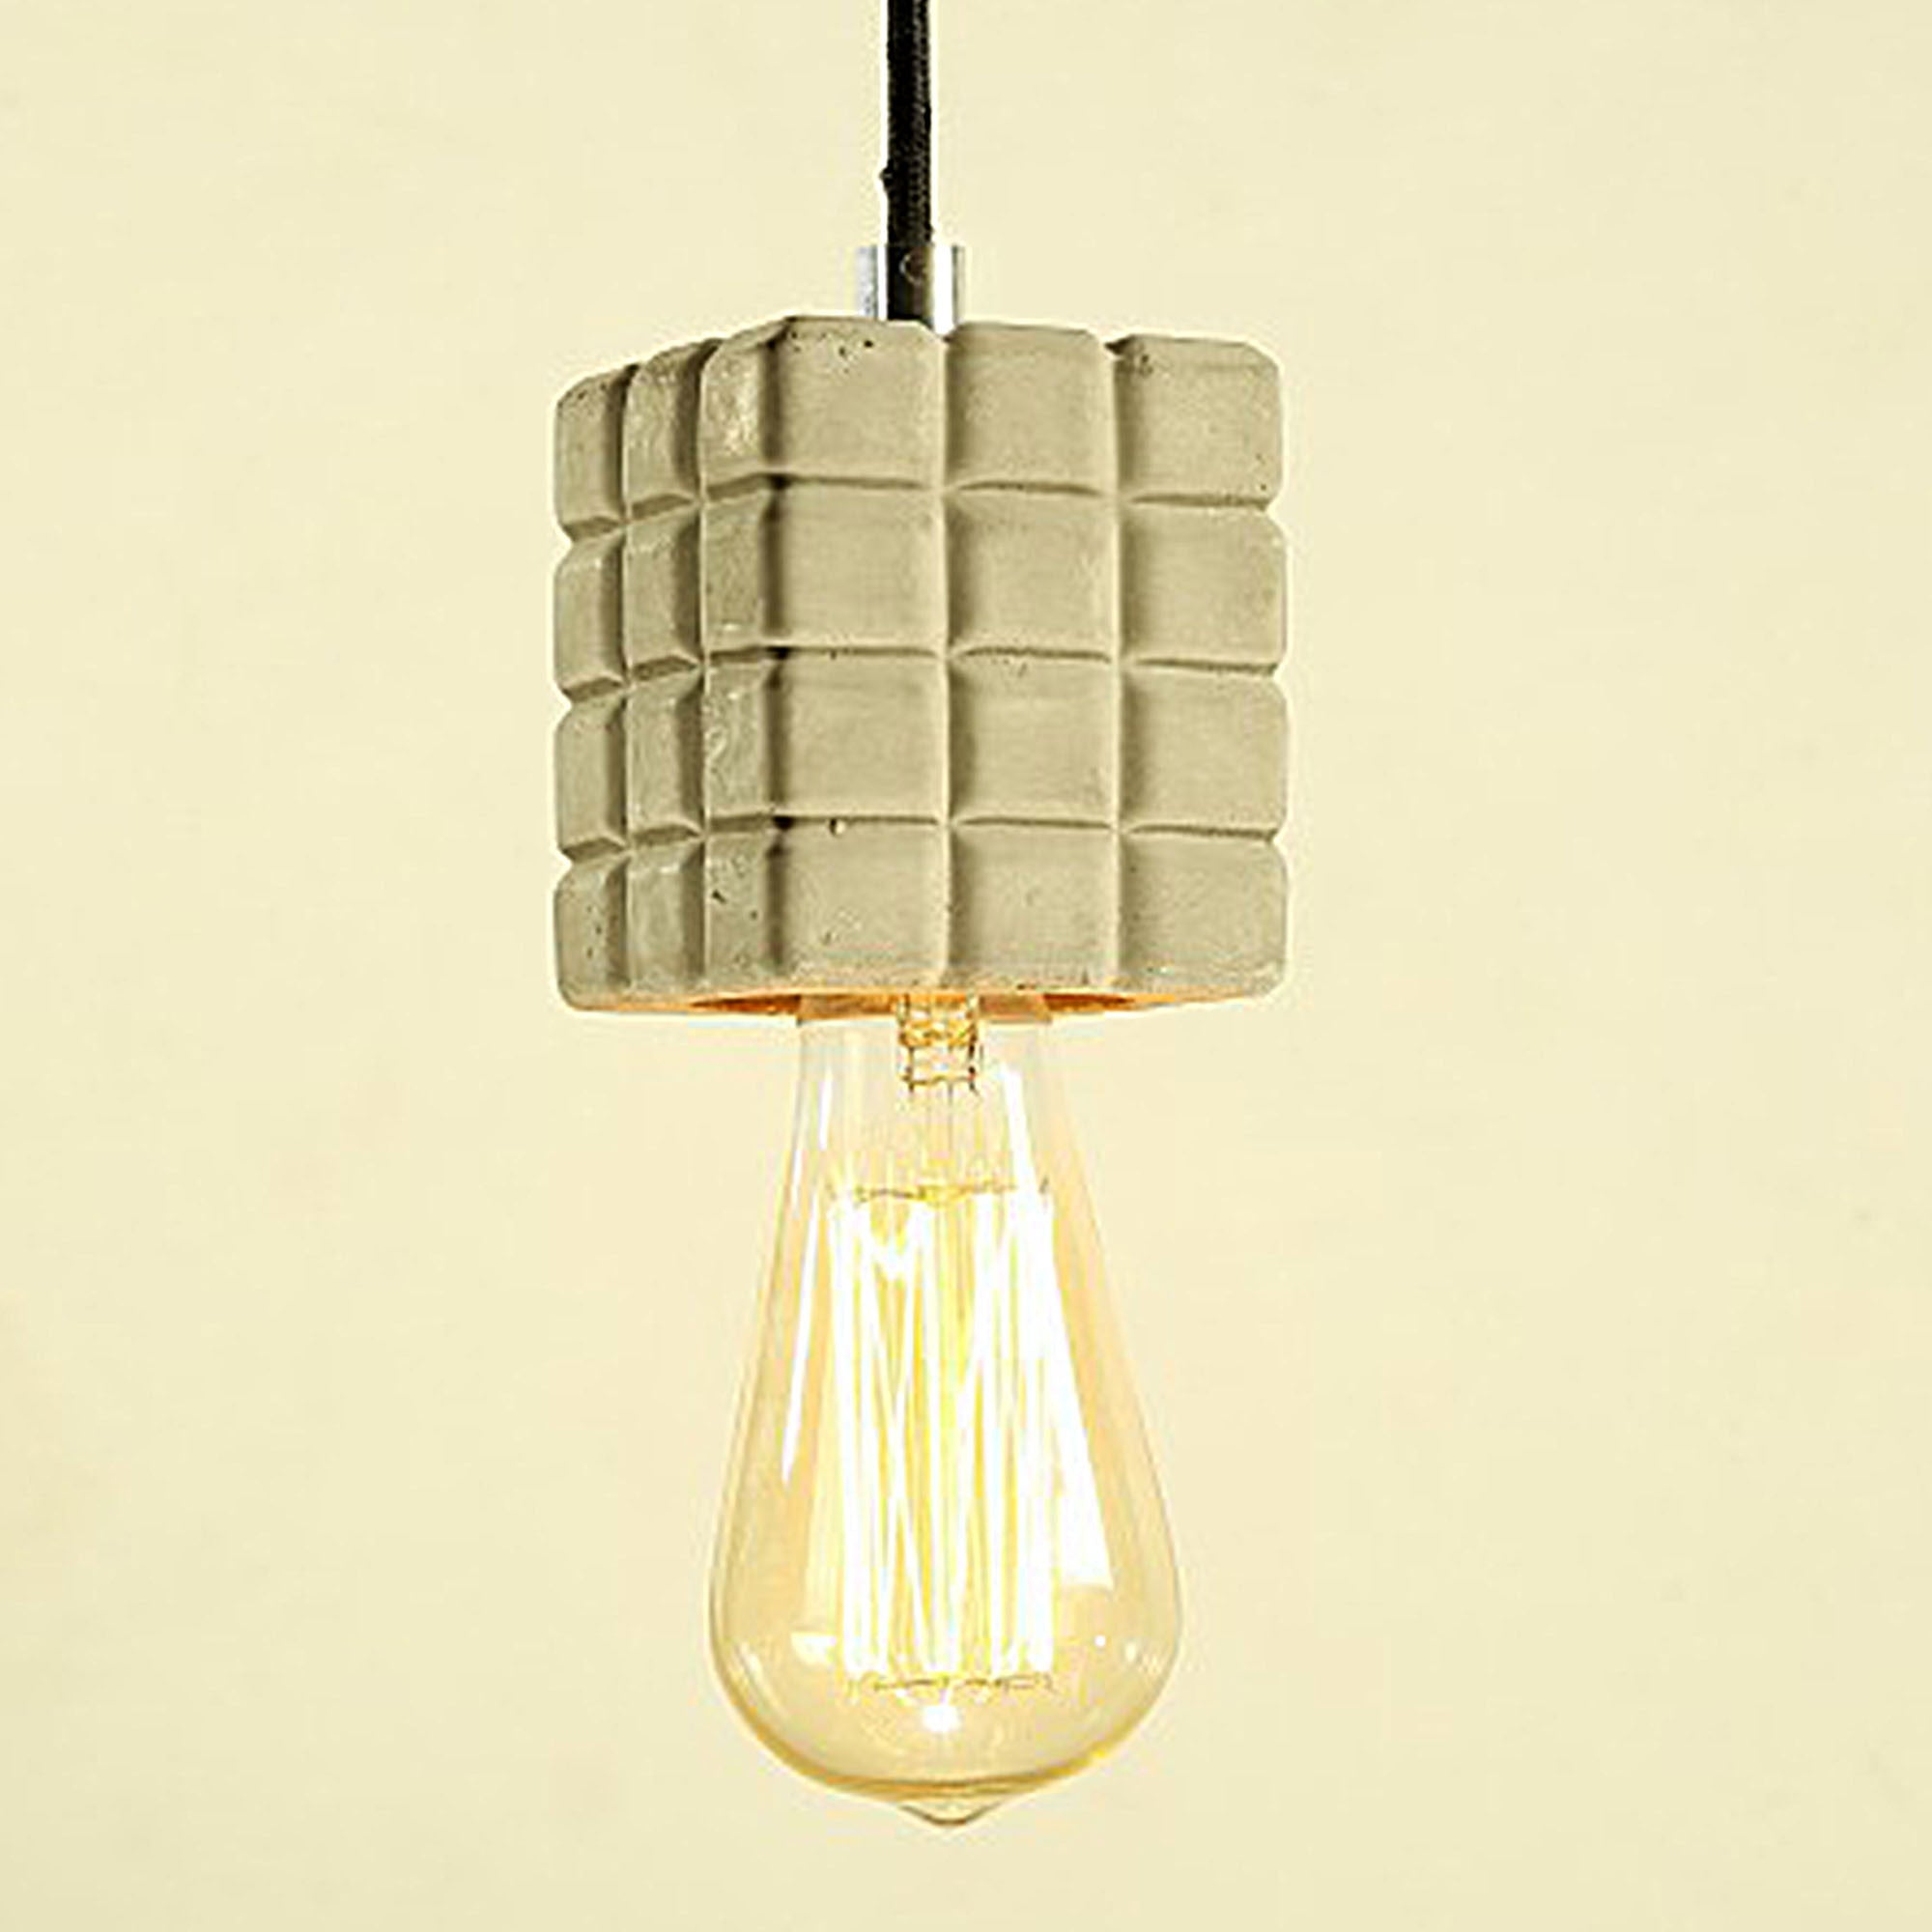 Industrial  Cement  Pendant  Lamp  CY-DD-251